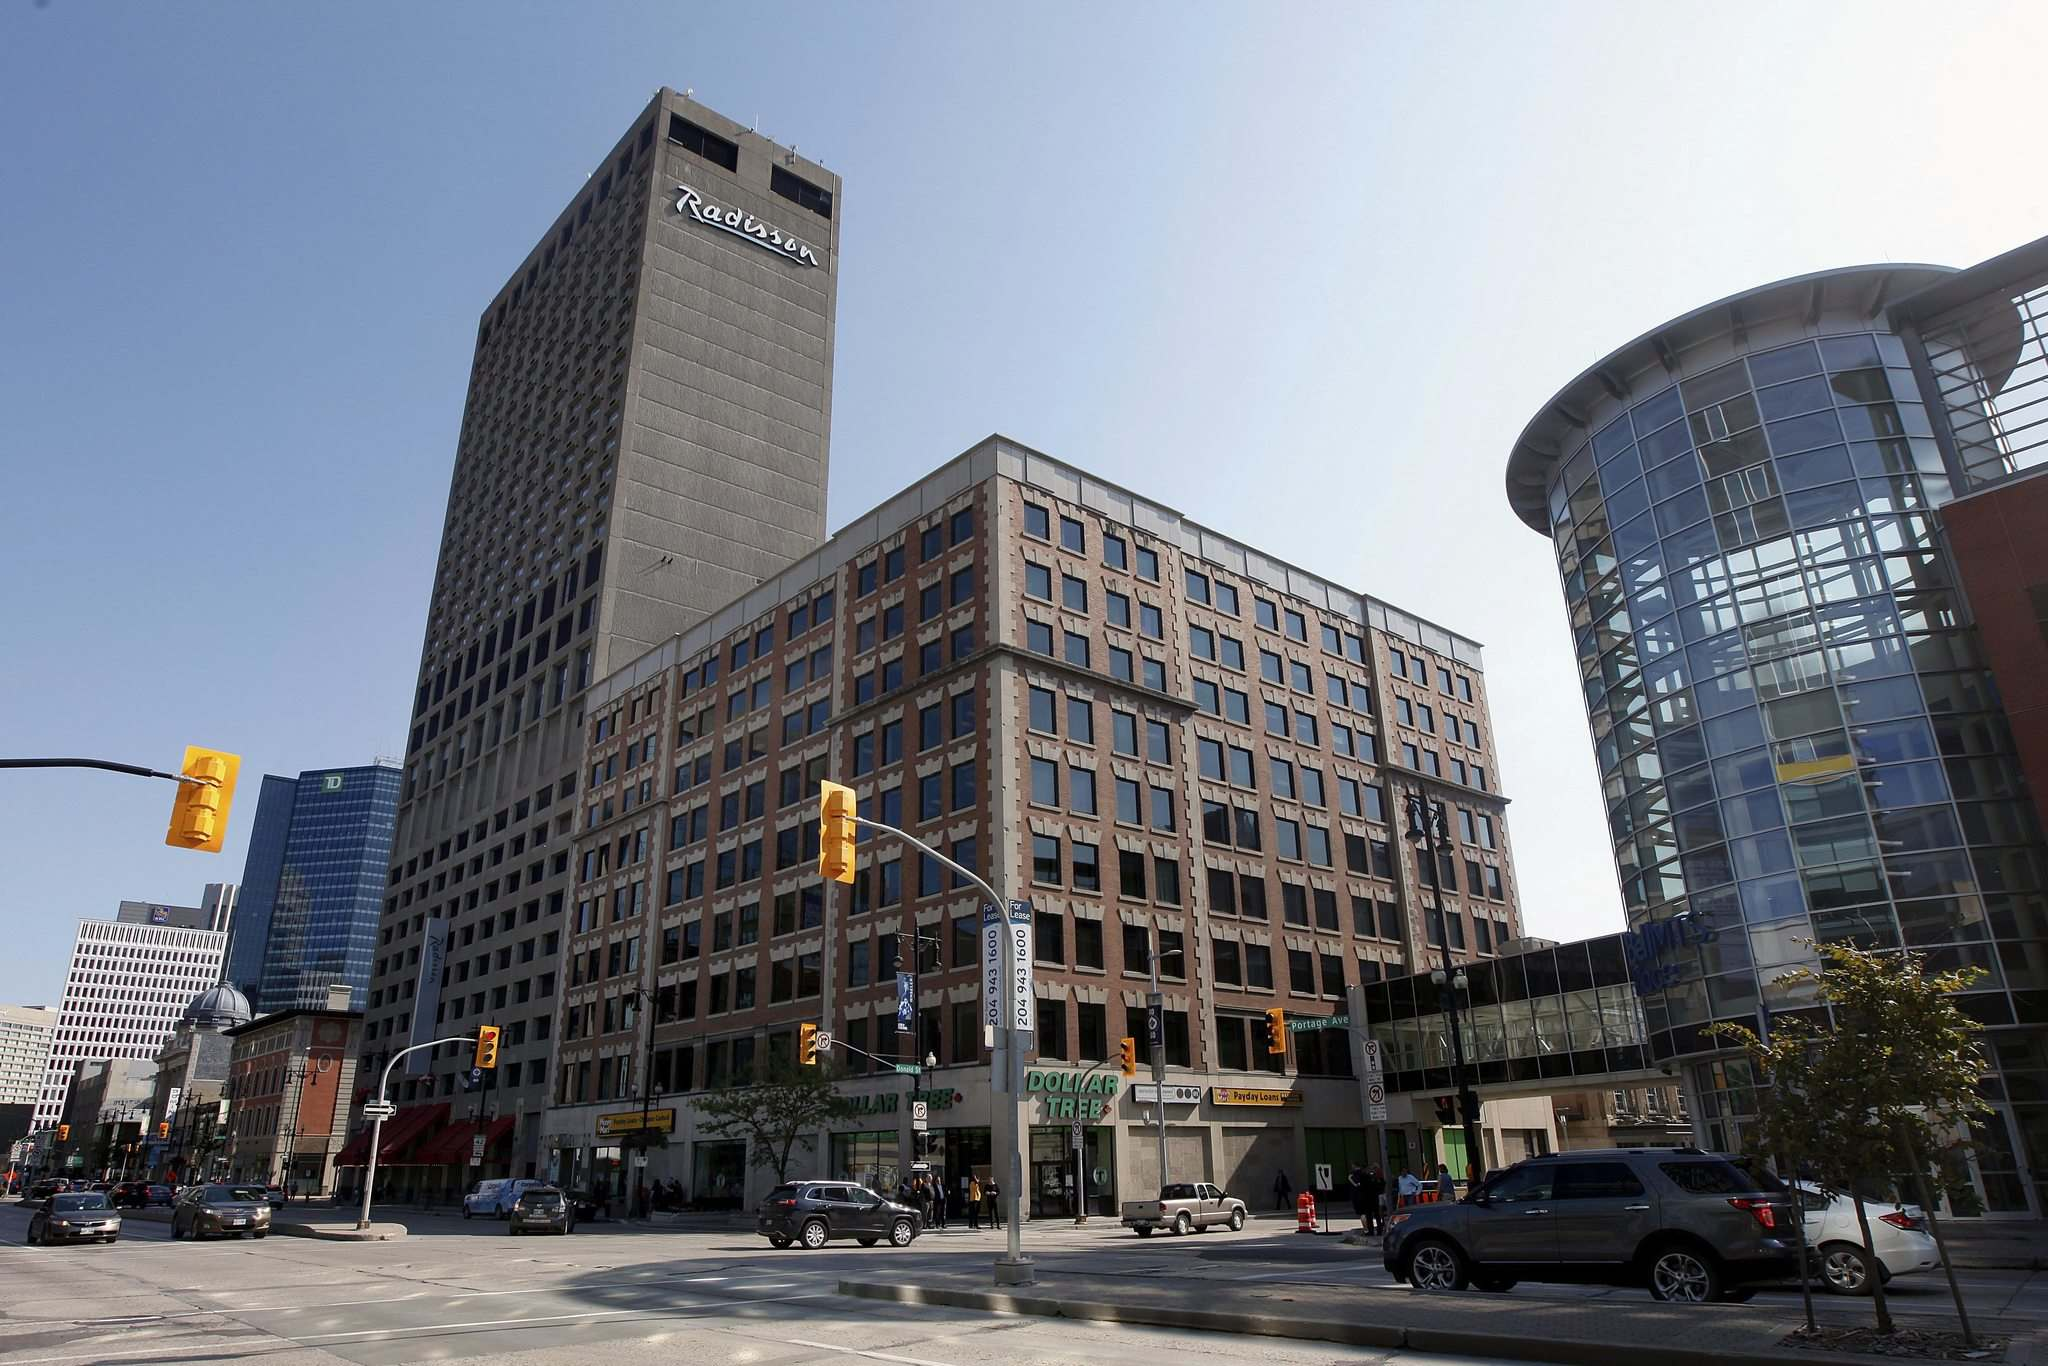 The Somerset Building is one of four up for designation as a historic building. (Phil Hossack / Winnipeg Free Press)